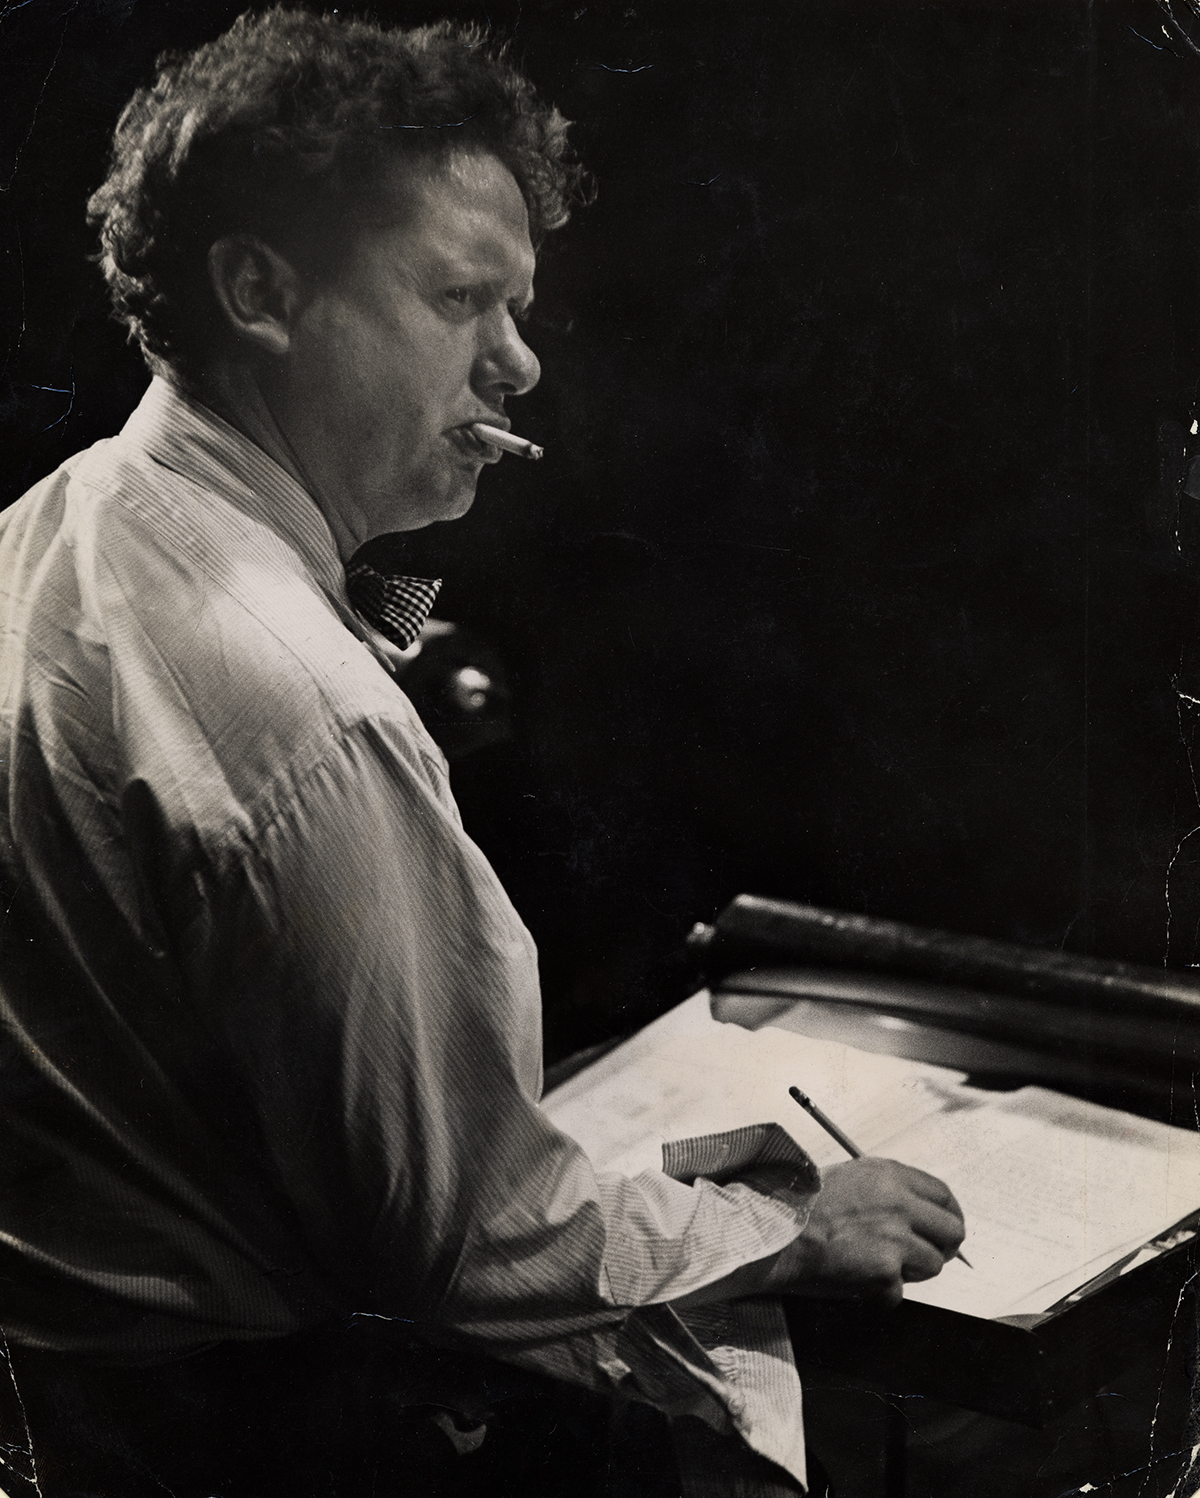 Photo of Dylan Thomas by Rollie McKenna, ca. 1953.